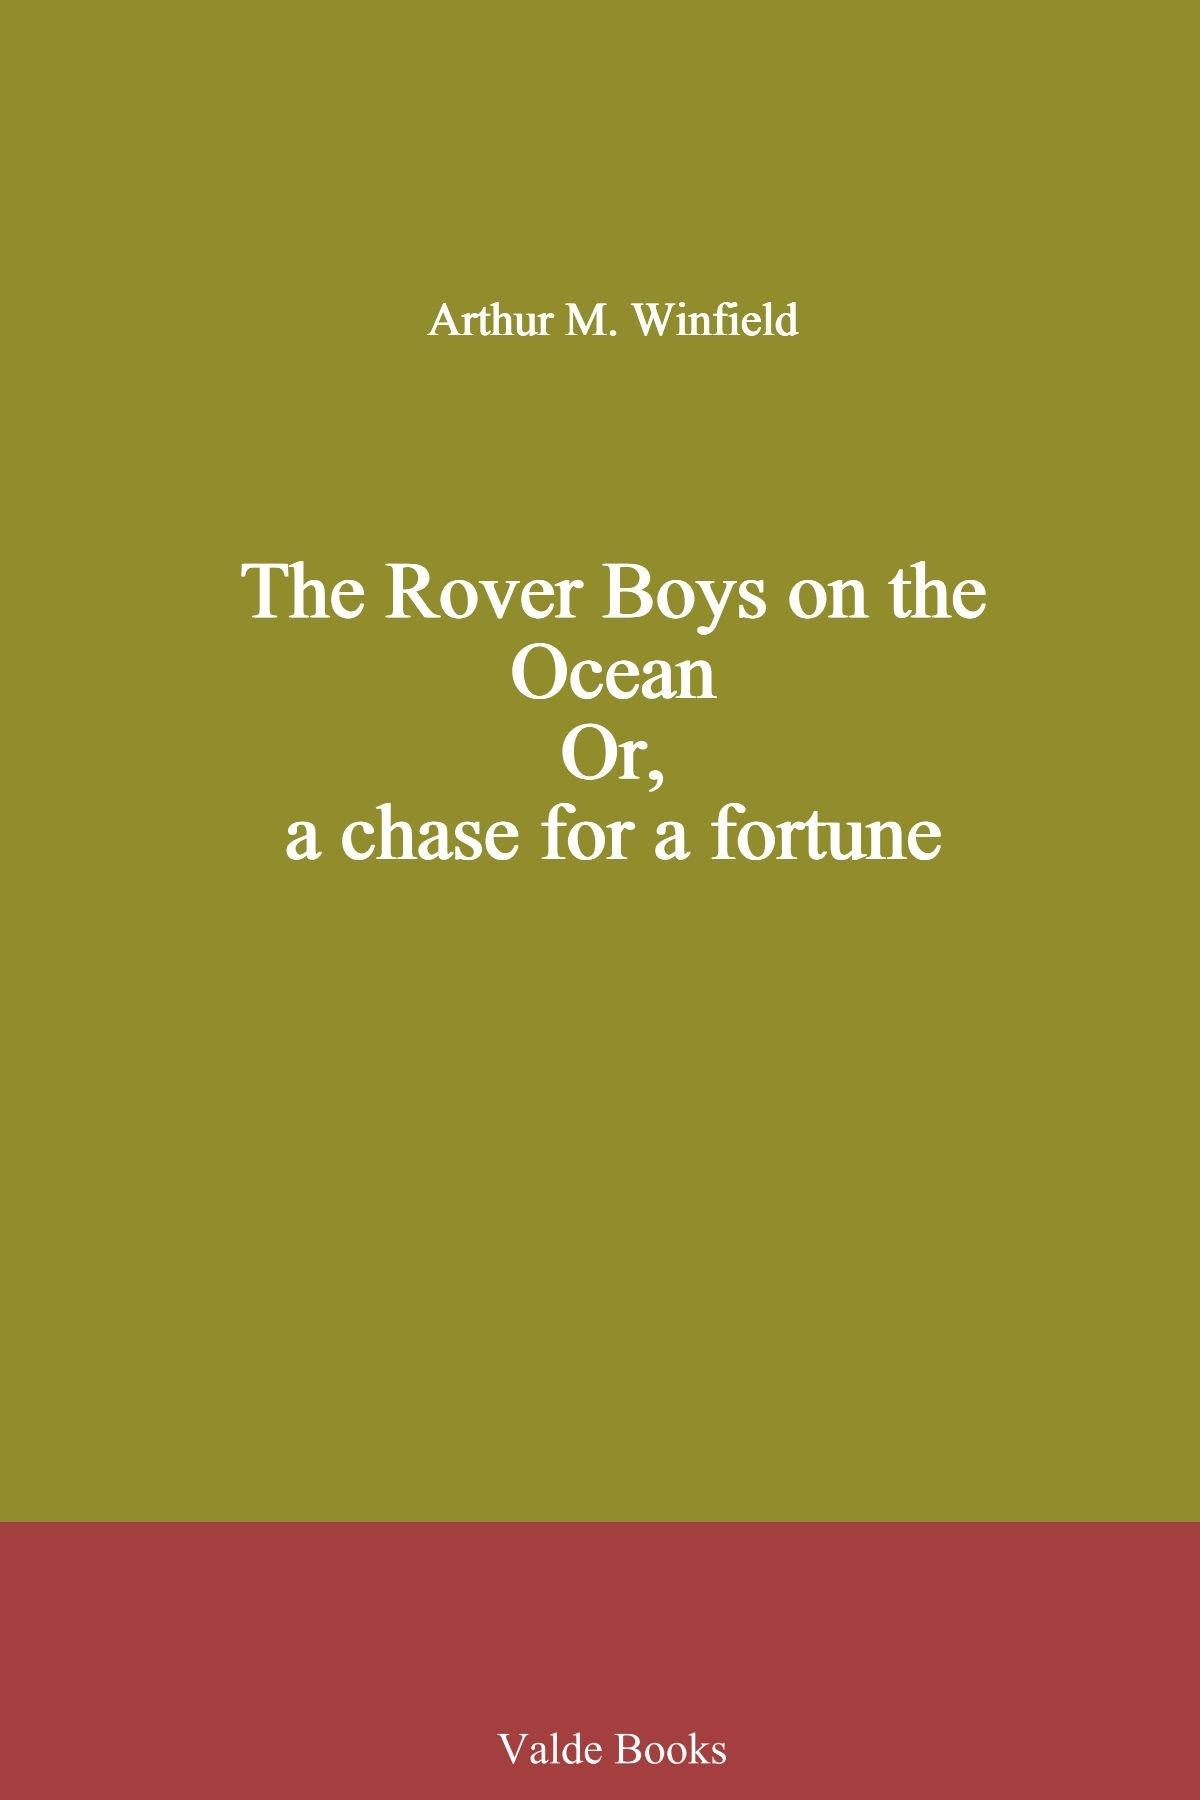 Rover Boys - Wikipedia